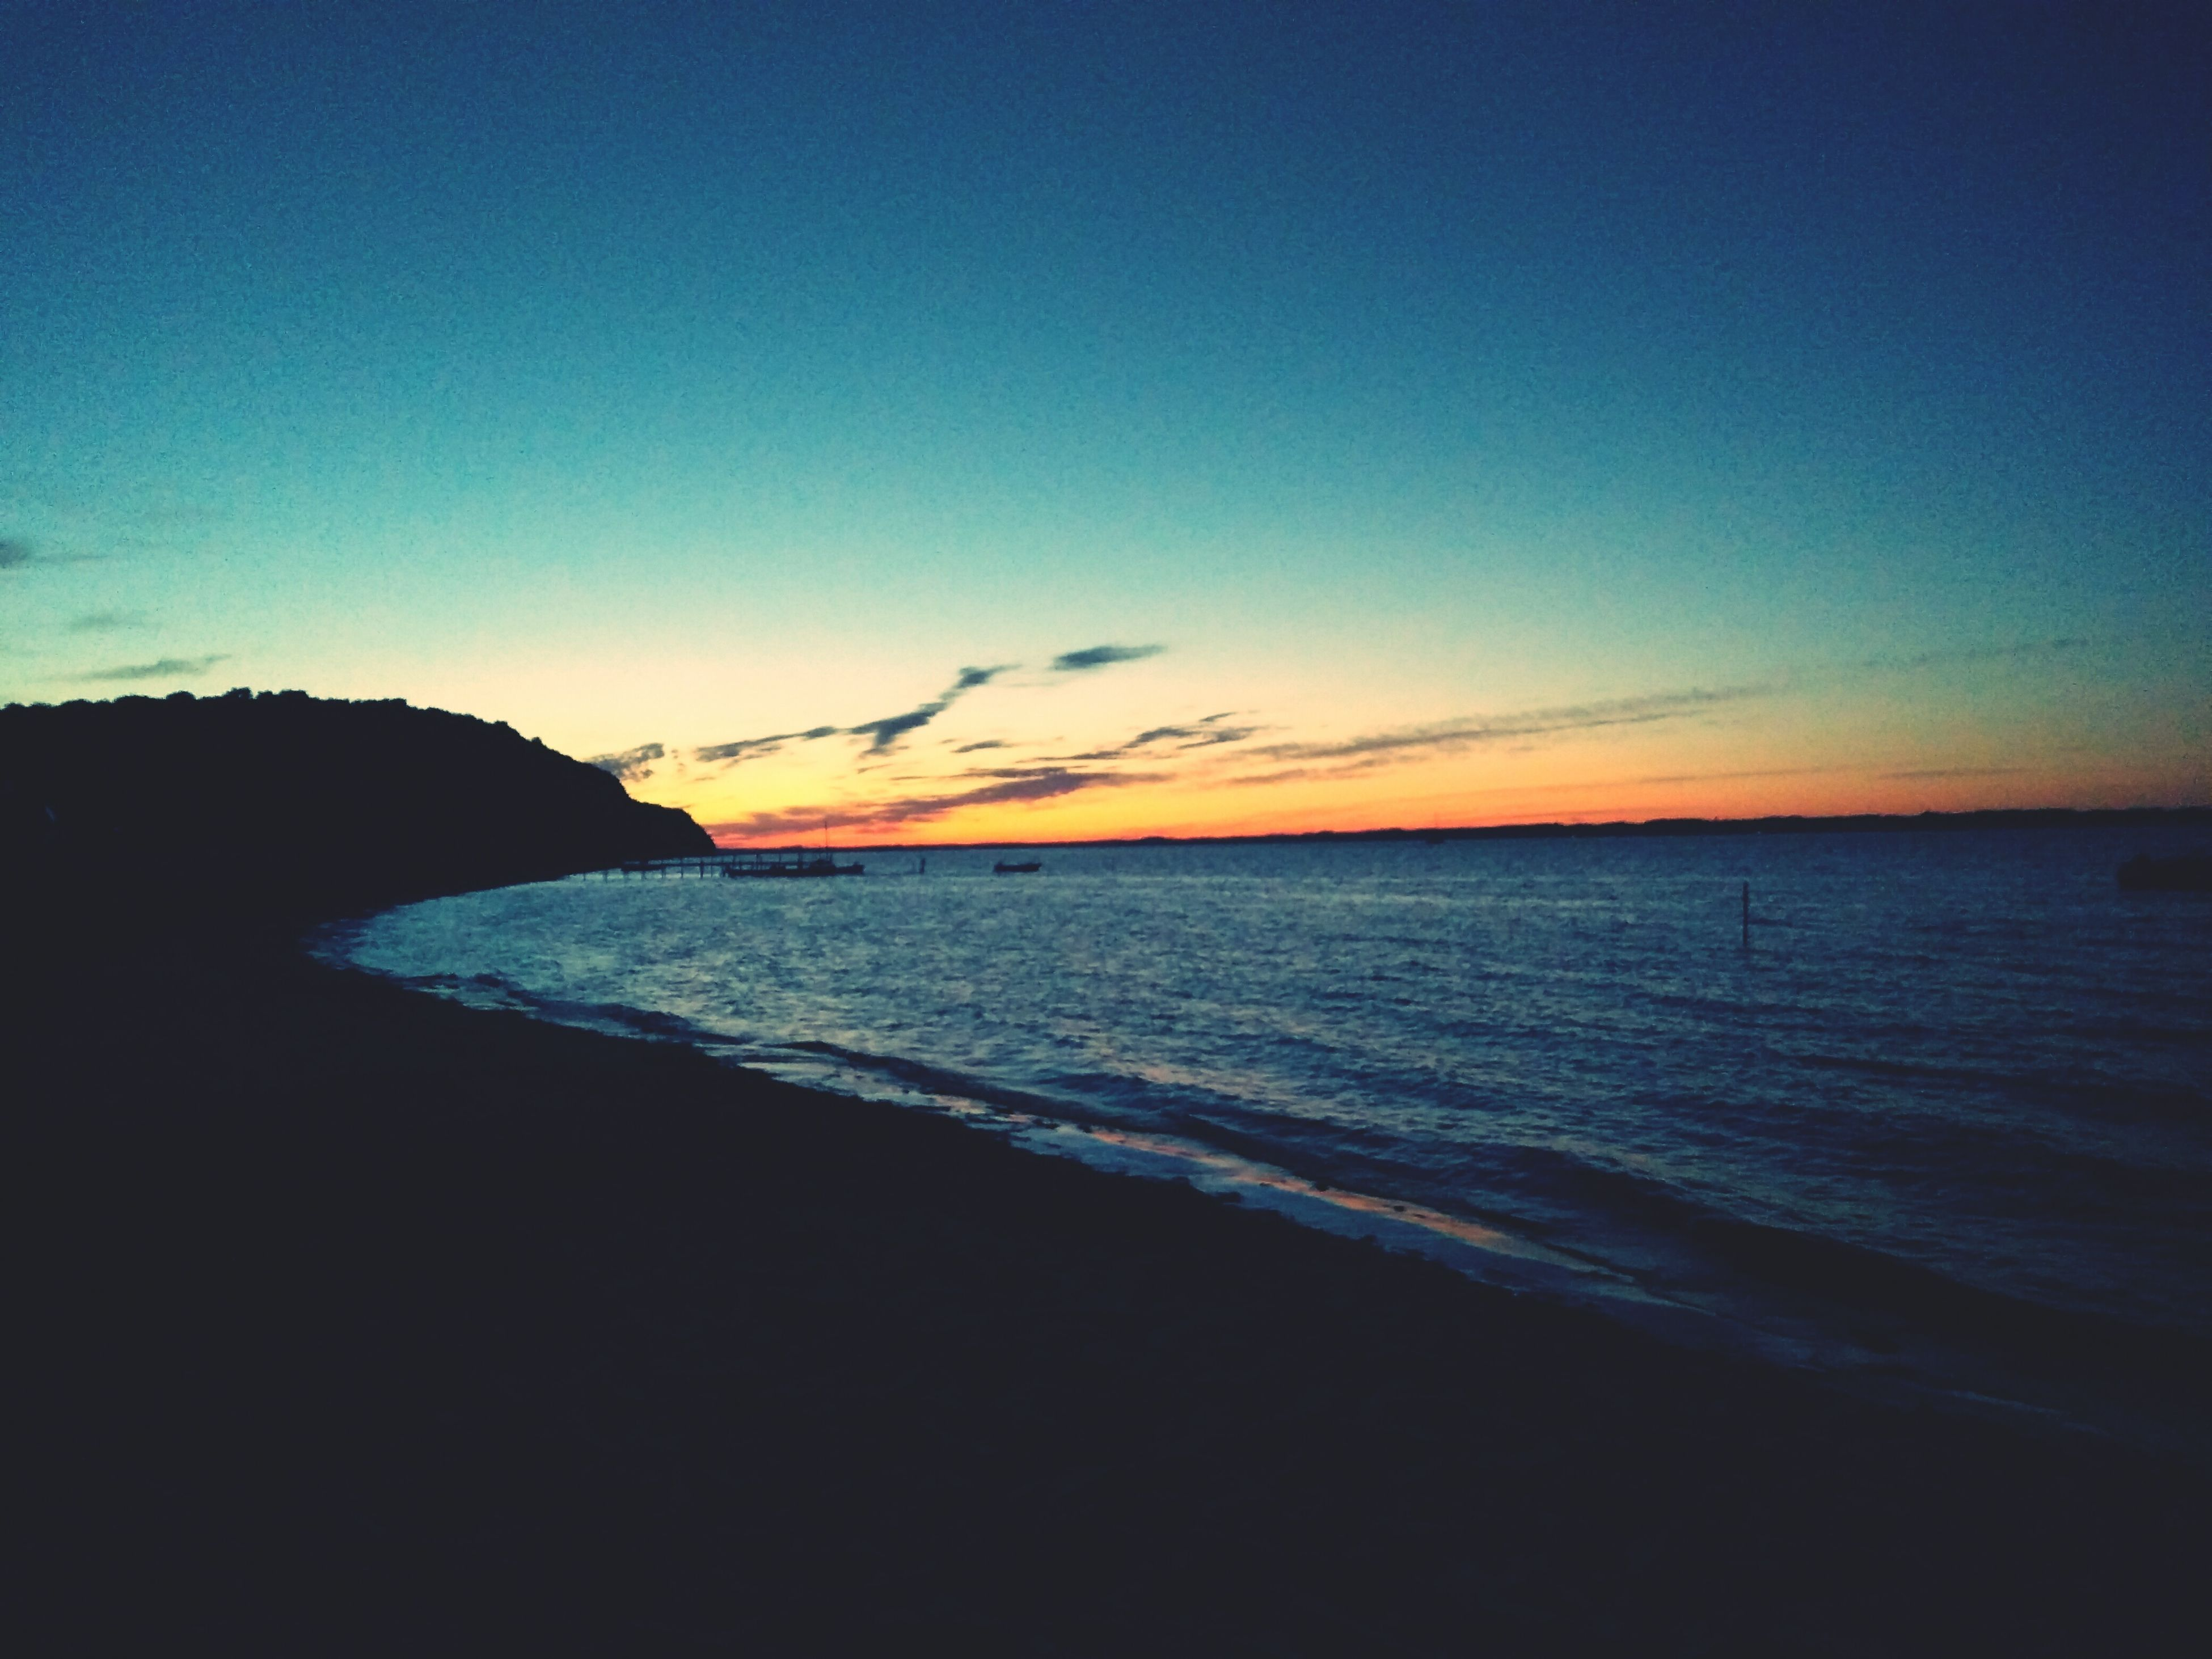 sea, sunset, beauty in nature, water, horizon over water, scenics, nature, sky, tranquil scene, tranquility, idyllic, silhouette, no people, beach, outdoors, day